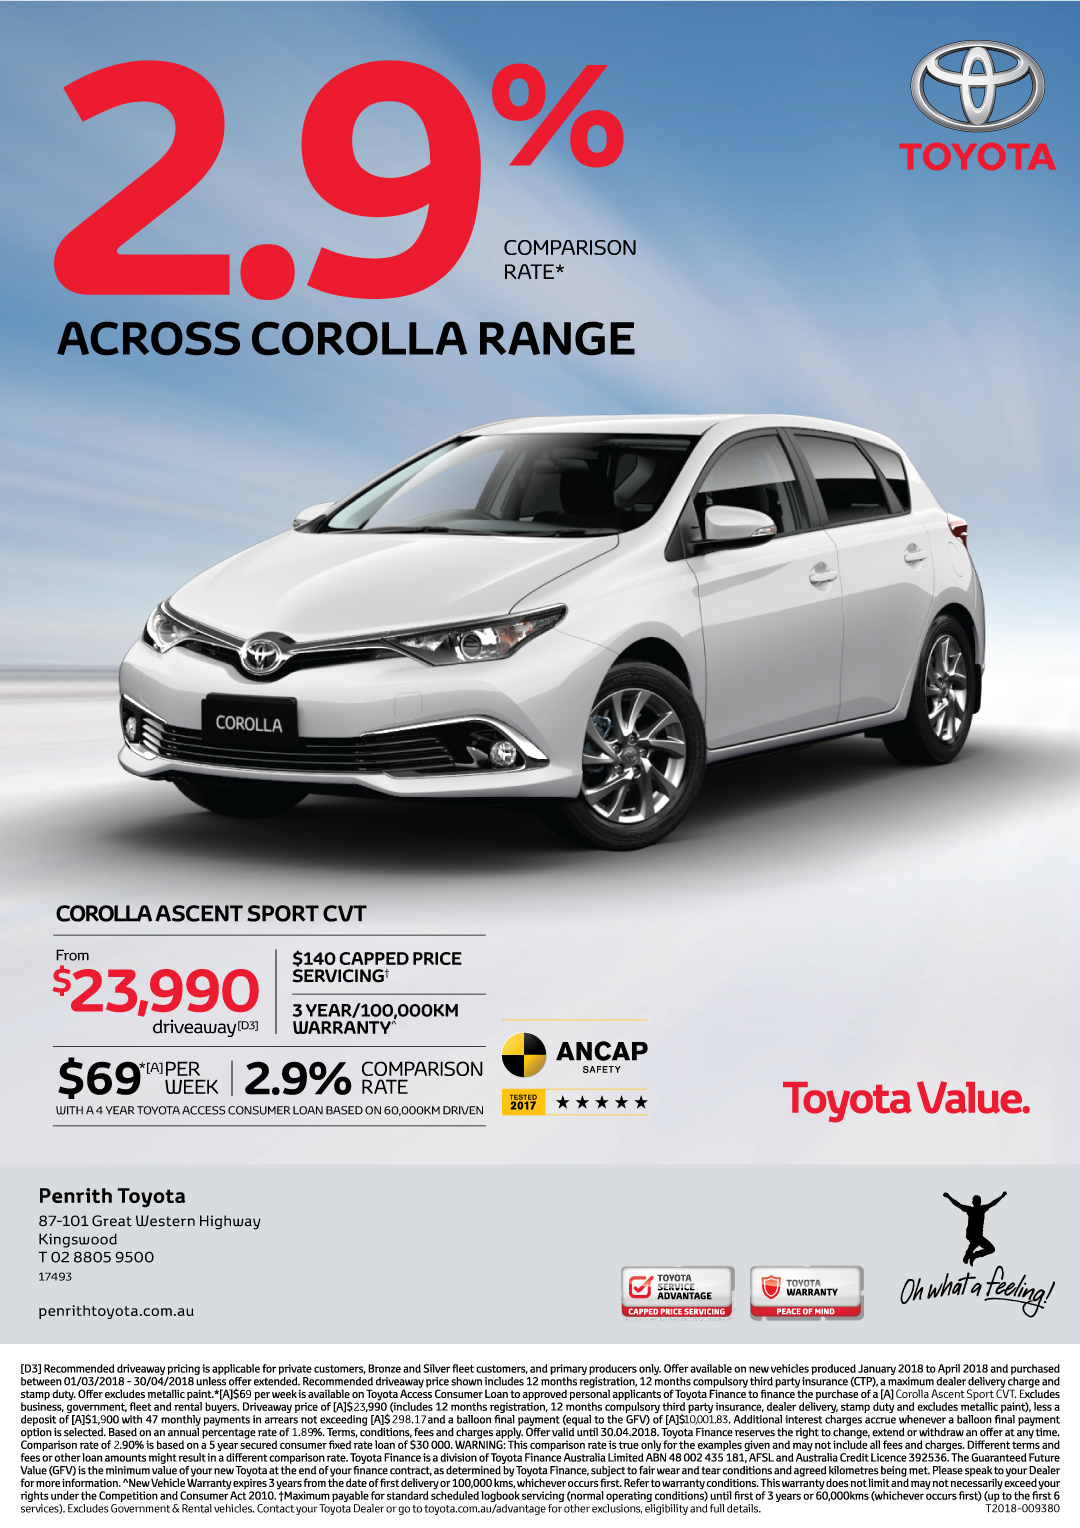 Toyota Corolla Ascent Sport on 2.9% Finance*